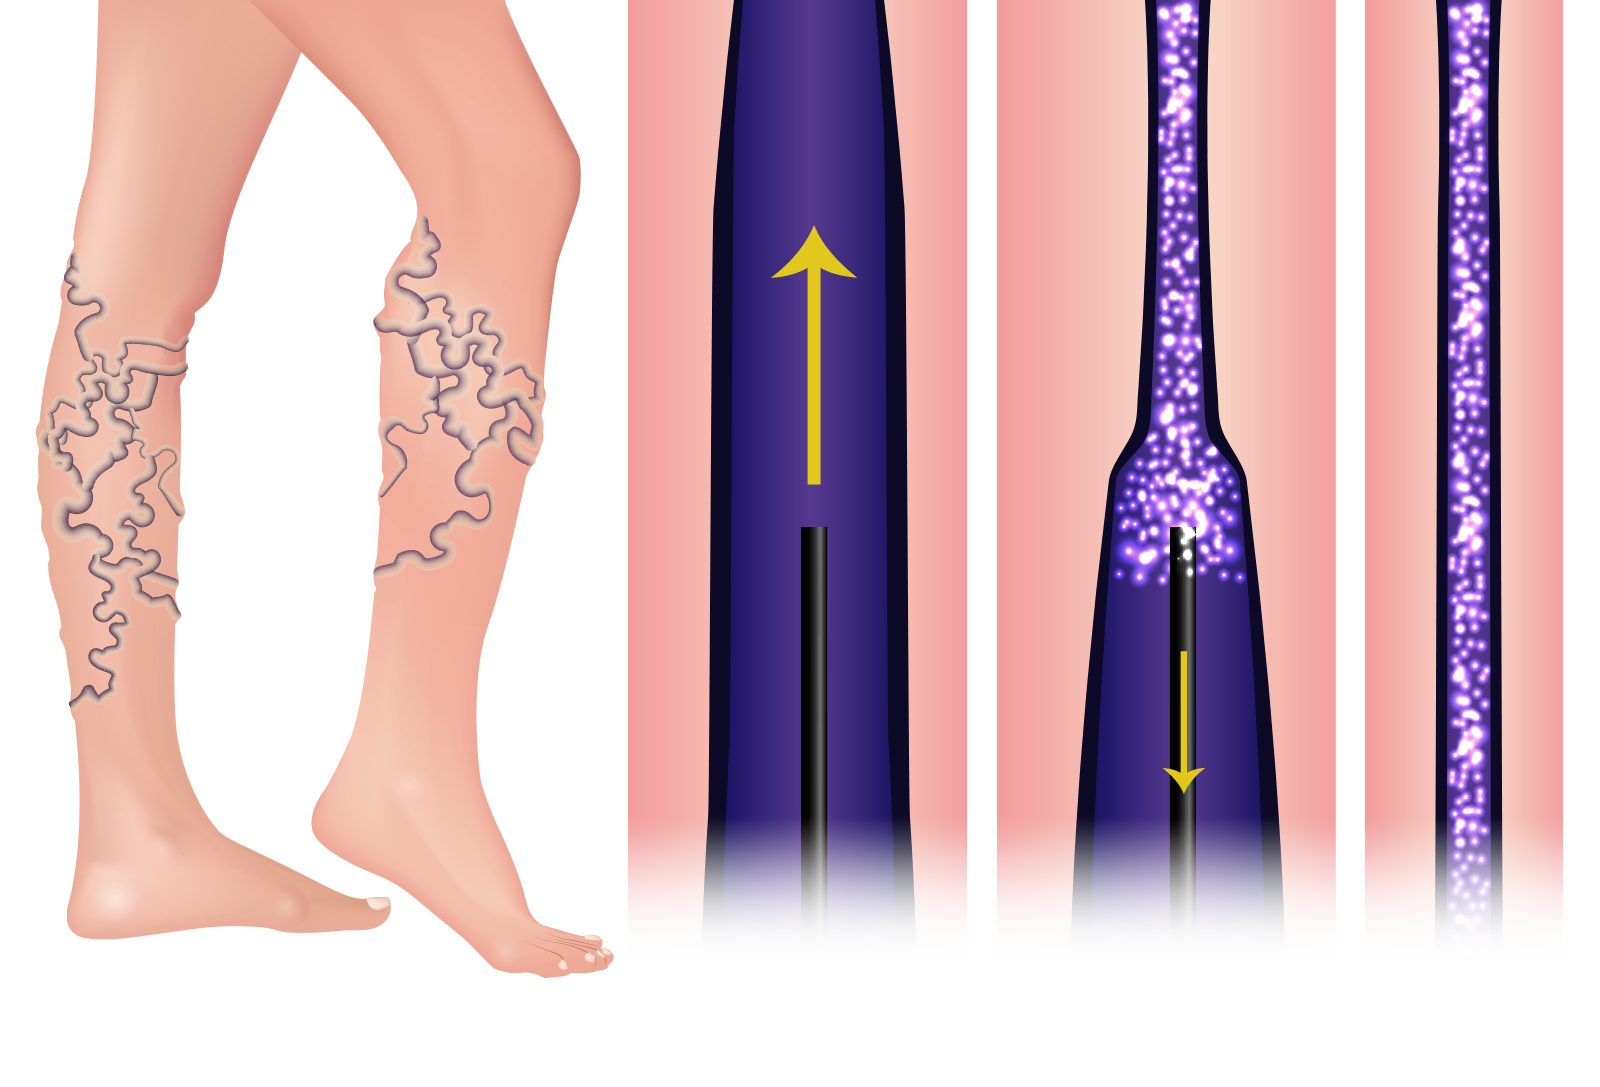 Illustration of sclerotherapy